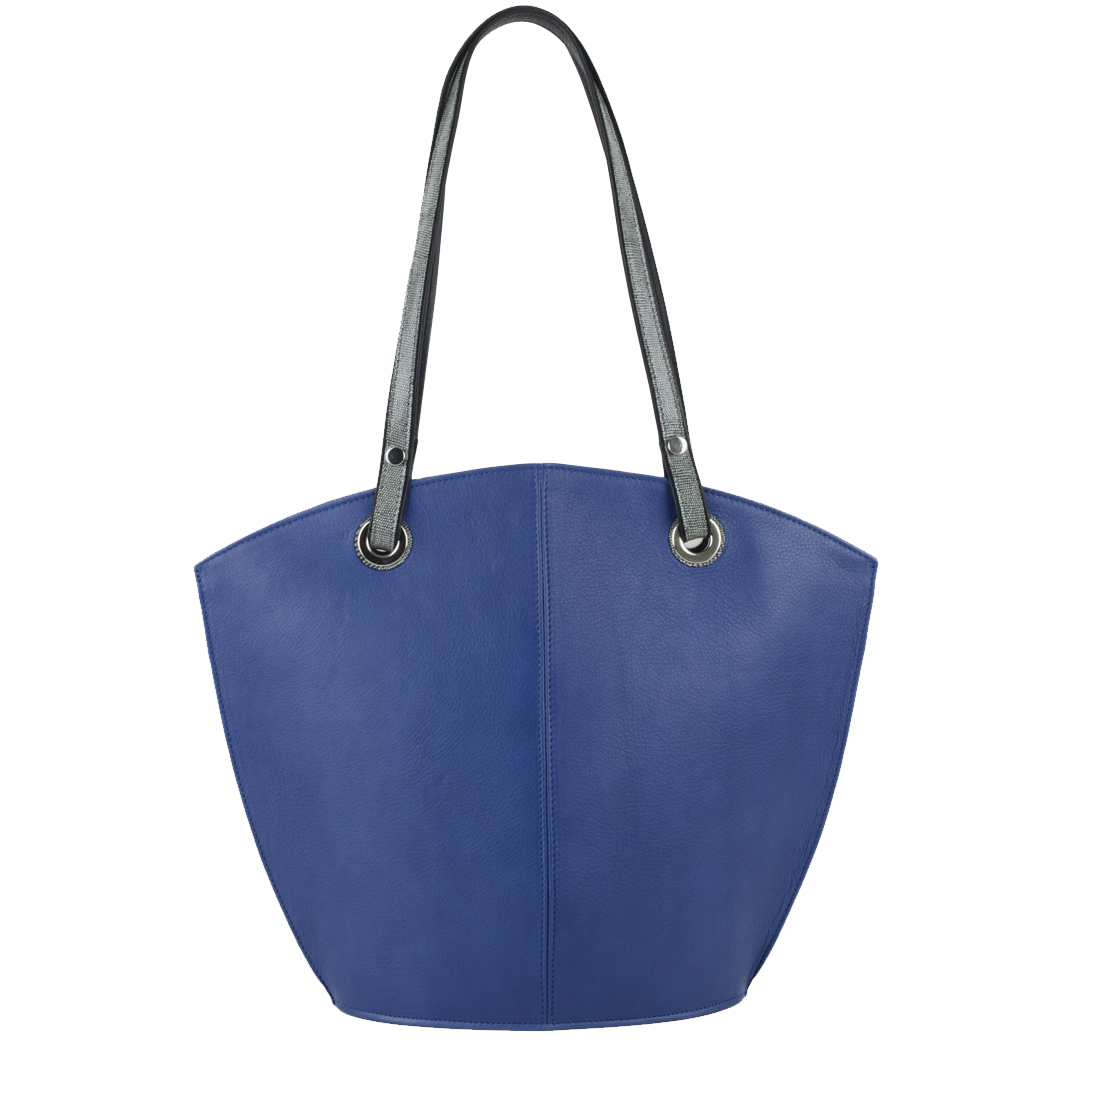 Audrey Blue Leather Tote Bag